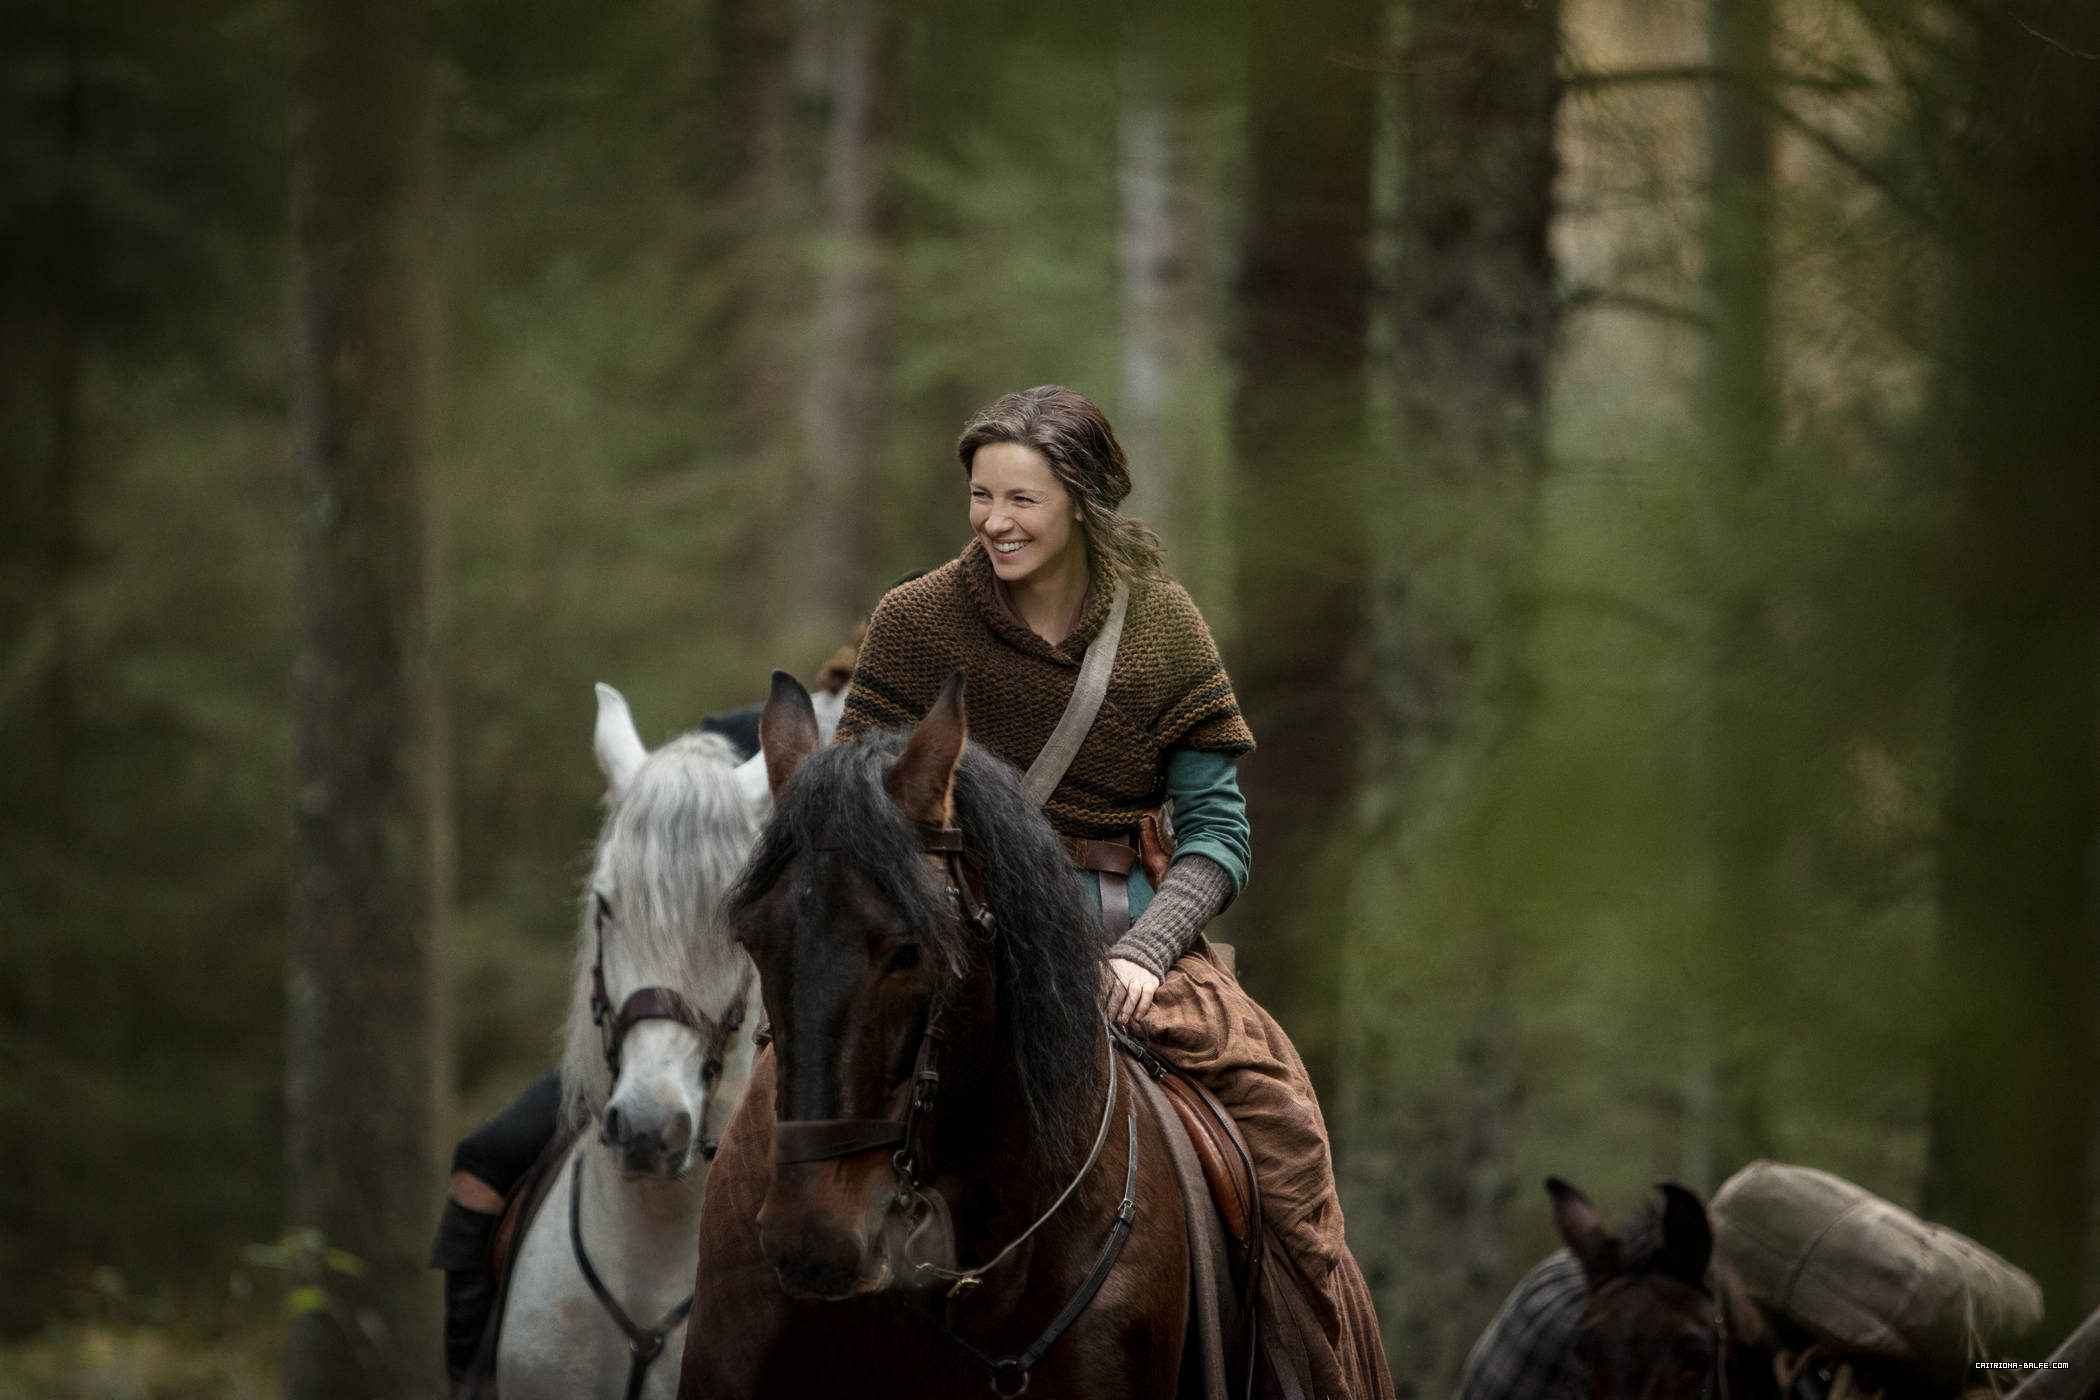 Photos: 'Outlander' Season 4 Stills + Behind the Scenes